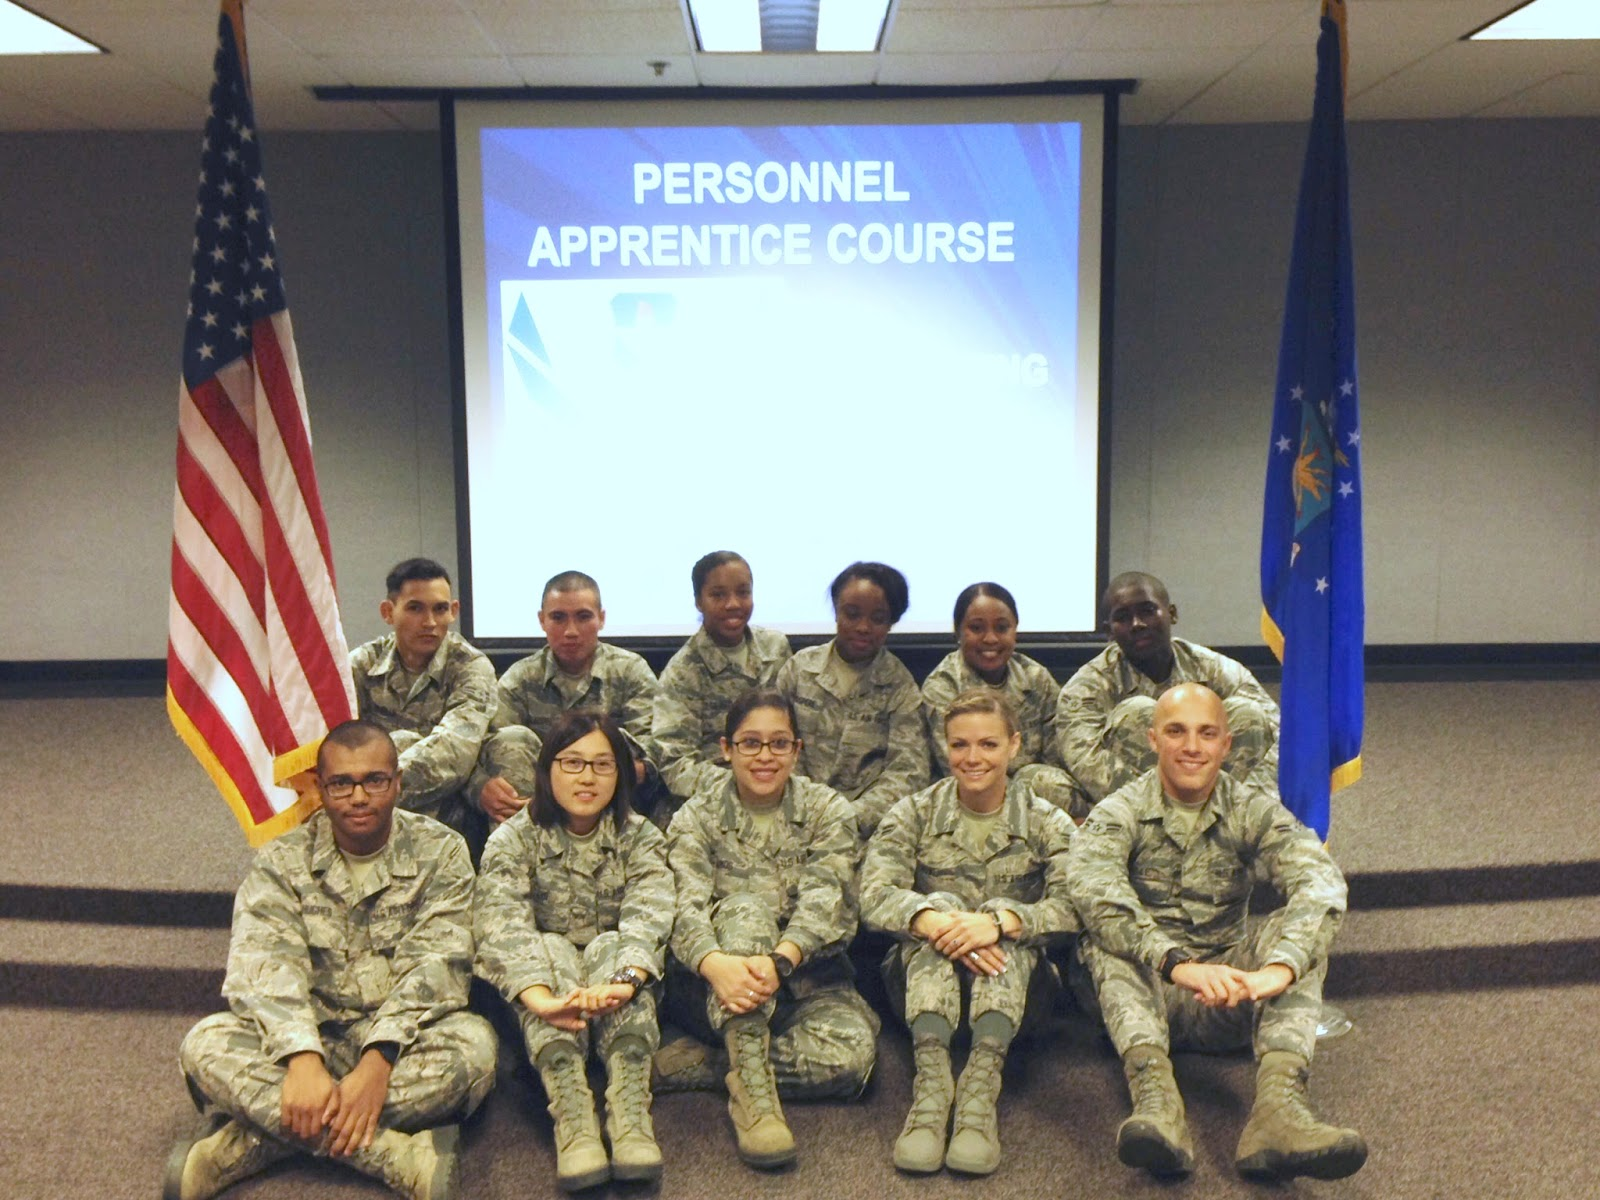 Keesler AFB Personnel Apprentice Course